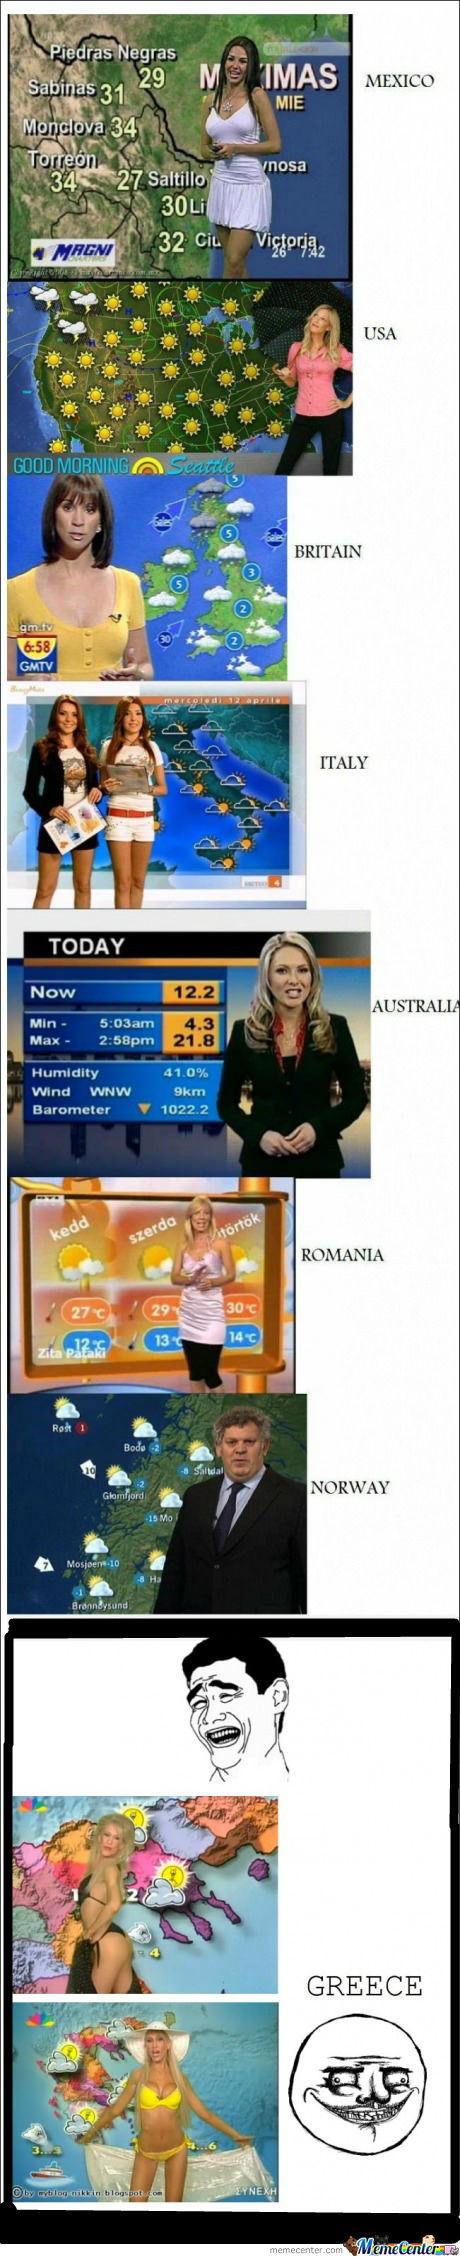 All Greeks Watch The Weather Forecast!everyone!